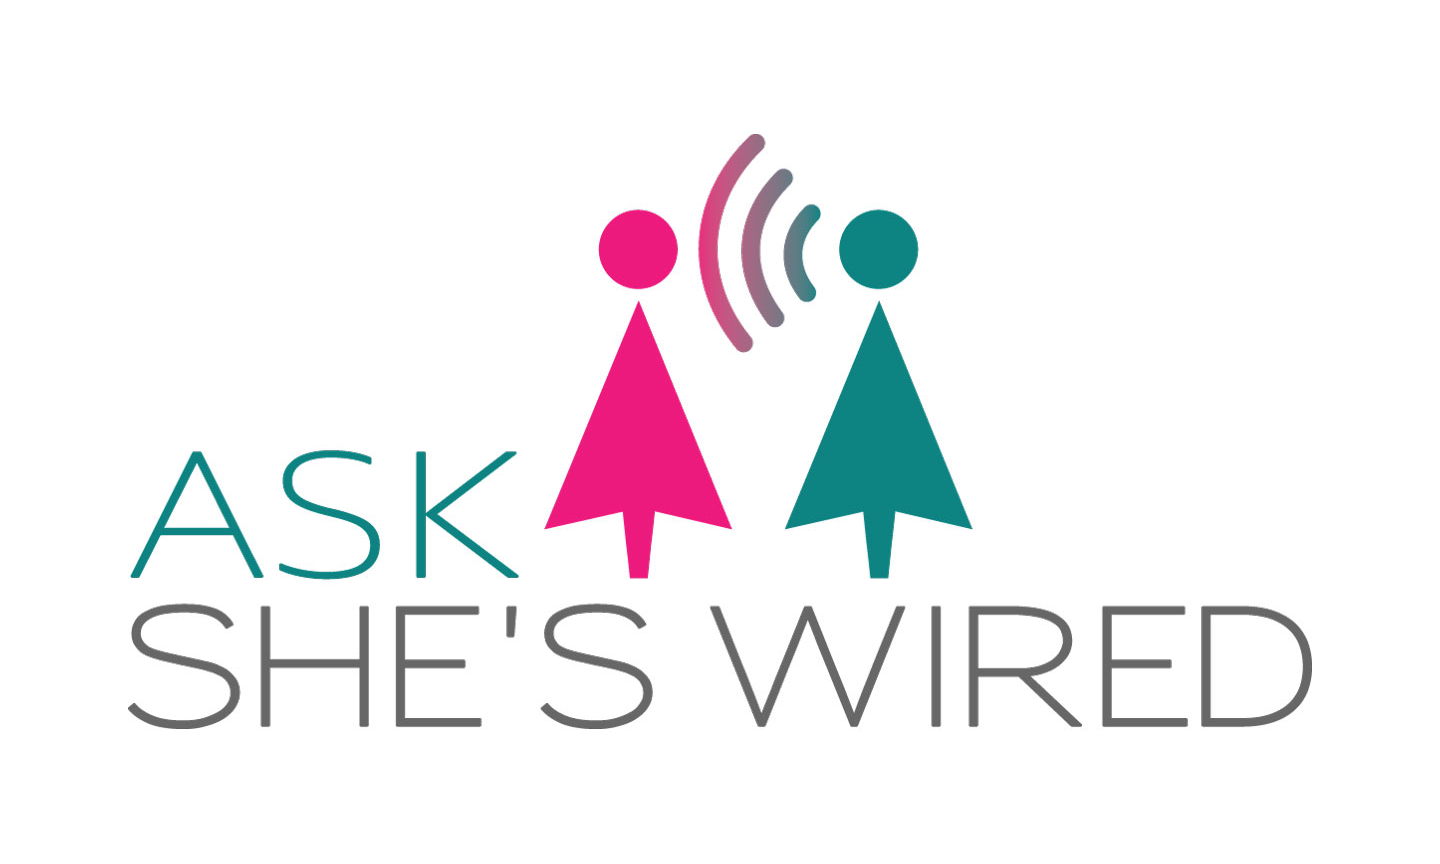 ask-shes-wired-logo_color.png